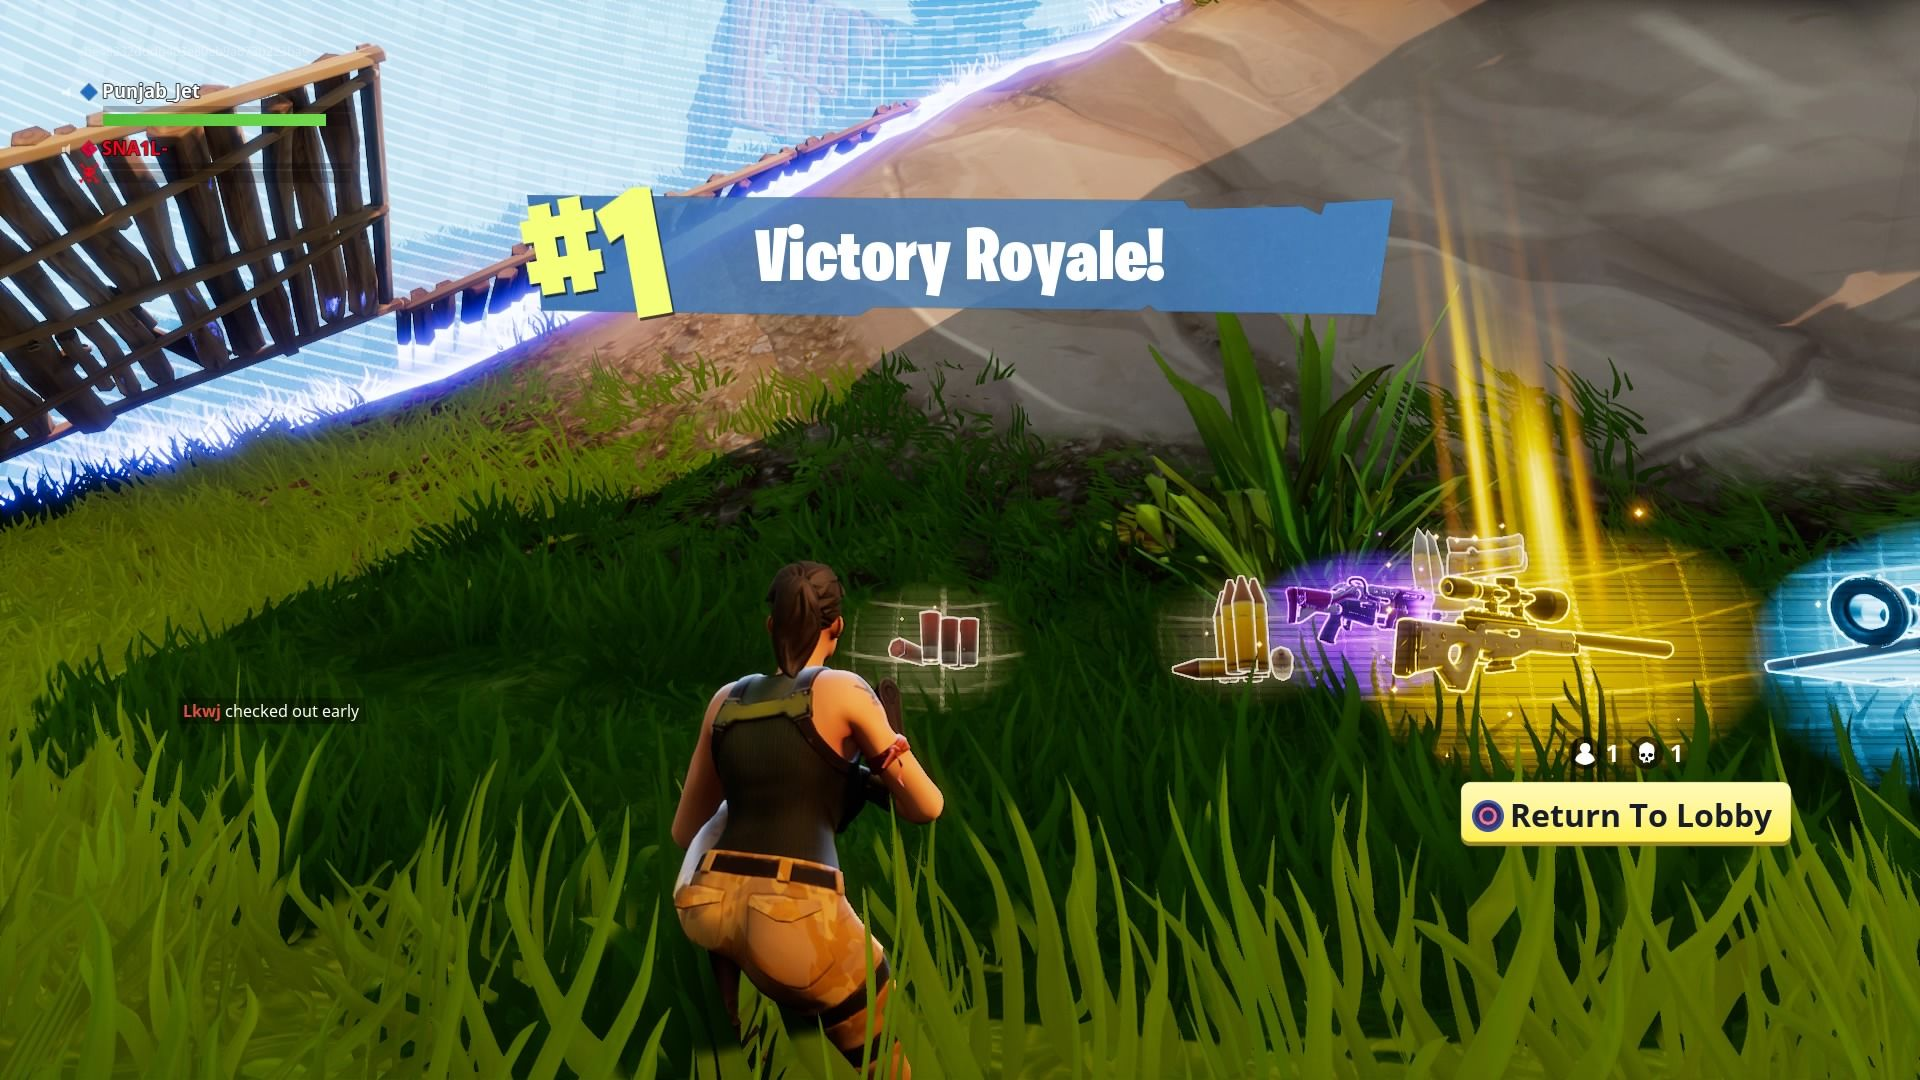 Victory Royale Fortnite Wallpapers Top Free Victory Royale Fortnite Backgrounds Wallpaperaccess